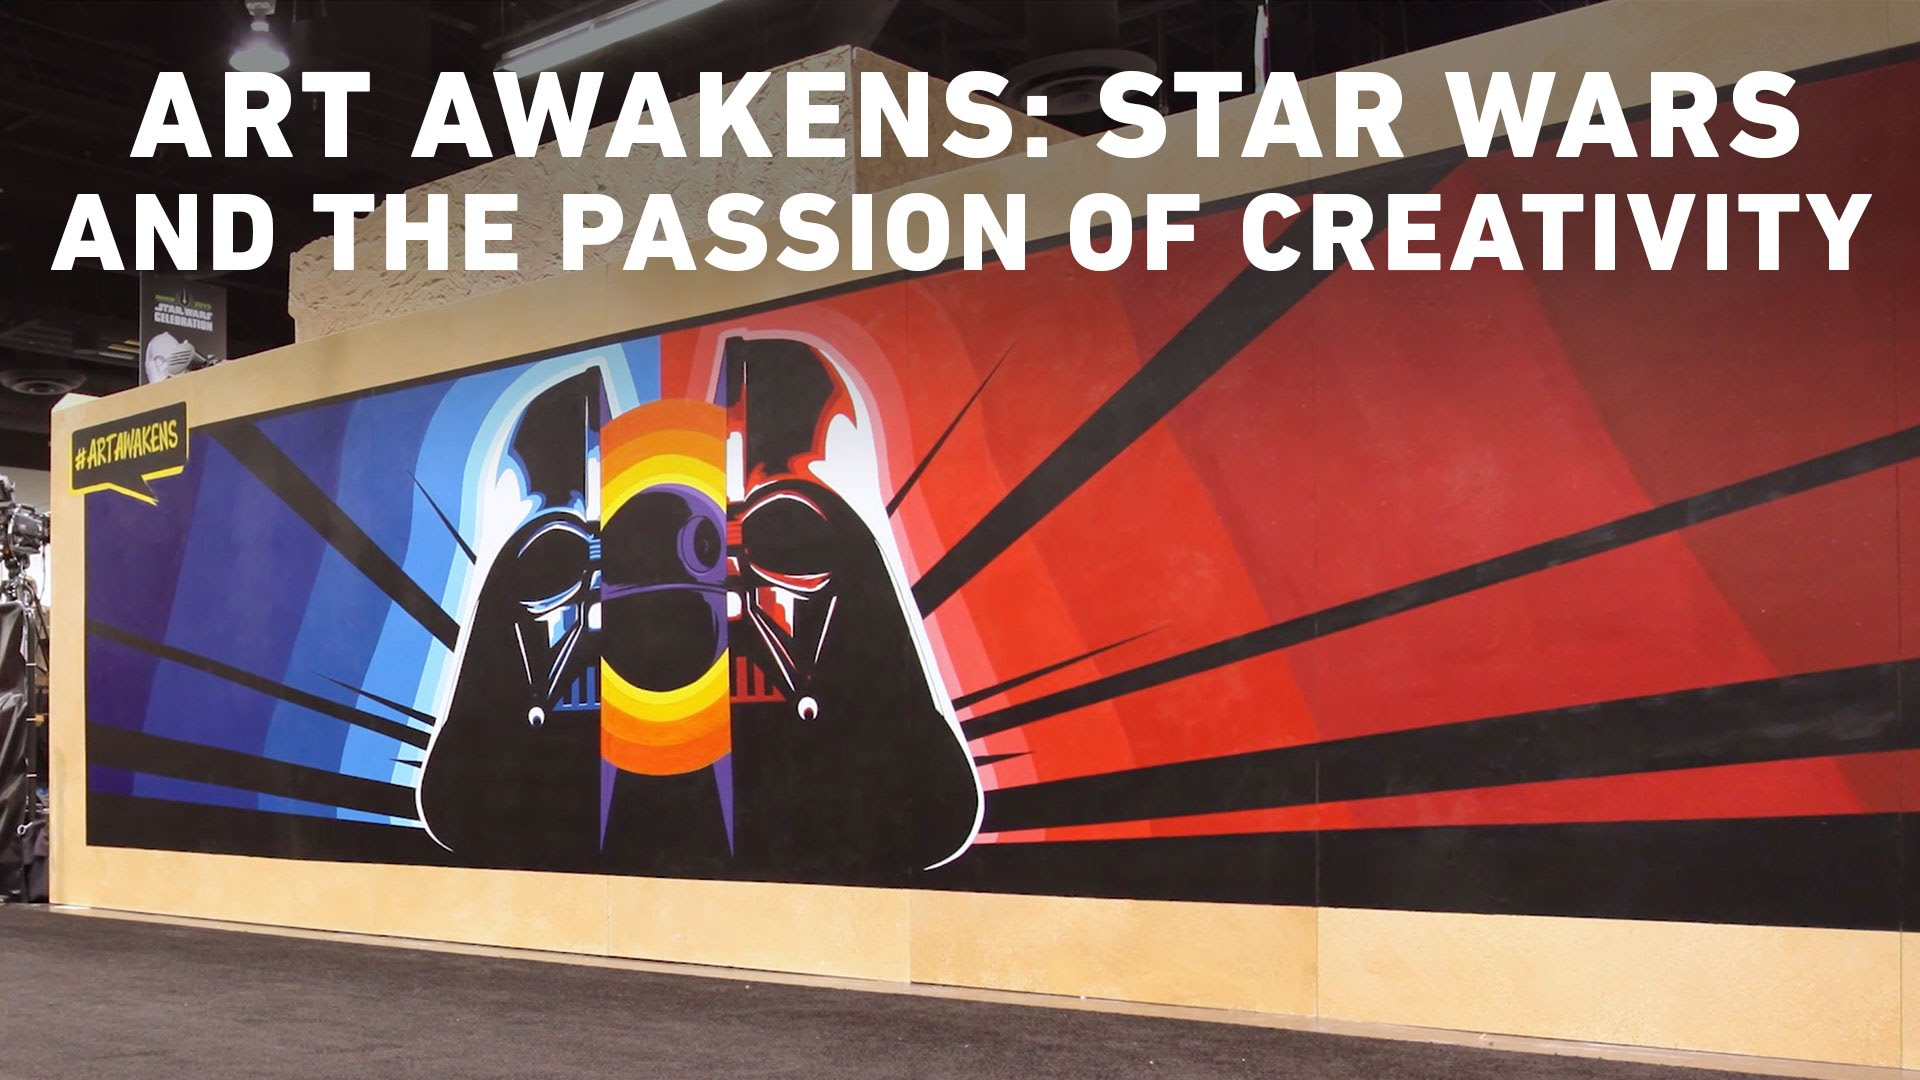 Art Awakens: Star Wars and the Passion of Creativity